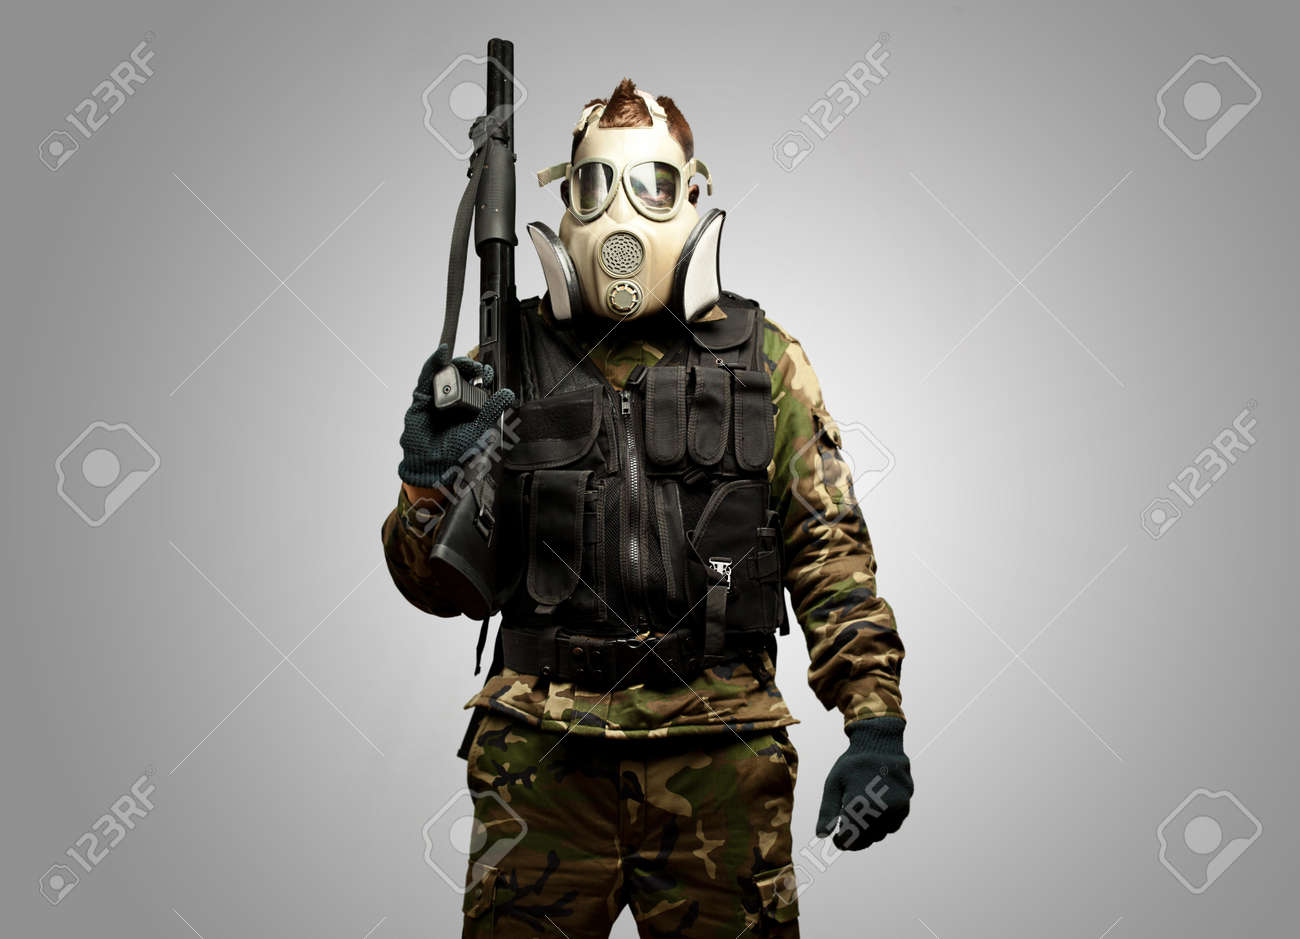 Portrait Of A Soldier With Gas Mask against a grey background - 16690538